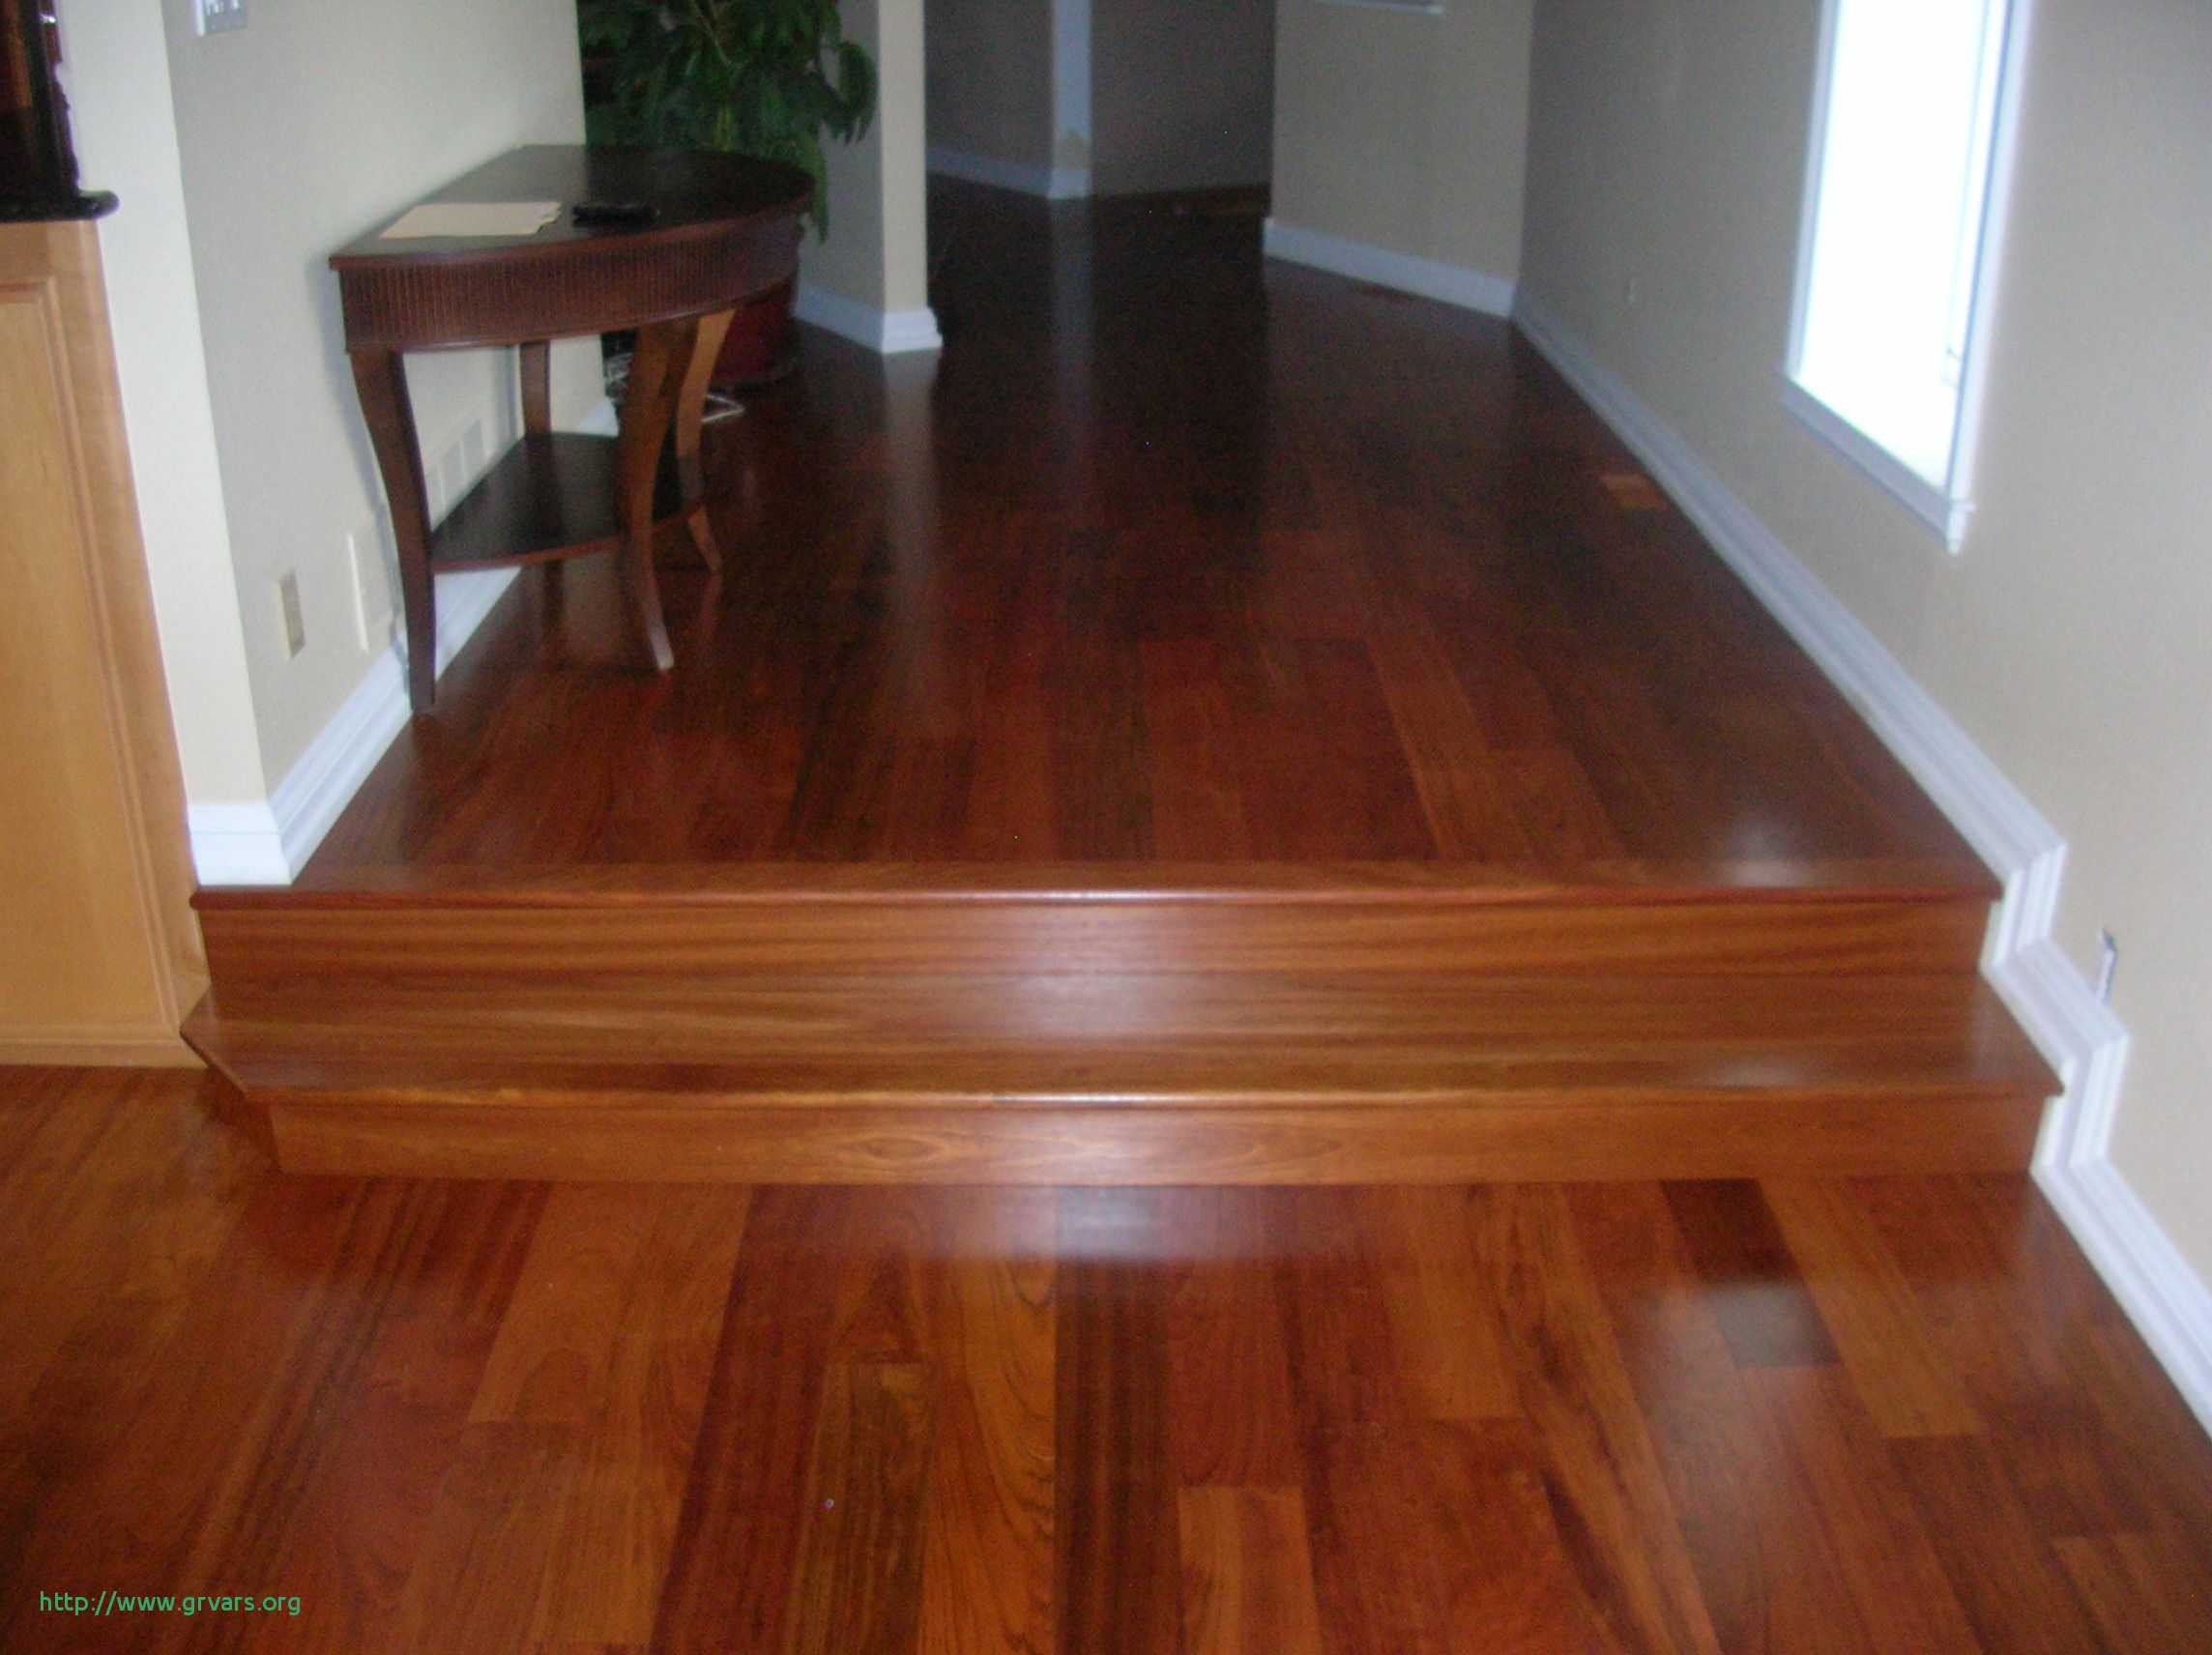 hardwood flooring cherry hill nj of hardwood floor refinishing cherry hill nj frais flooring design intended for hardwood floor refinishing cherry hill nj charmant ideal floors no carpet other then area carpet brazilian